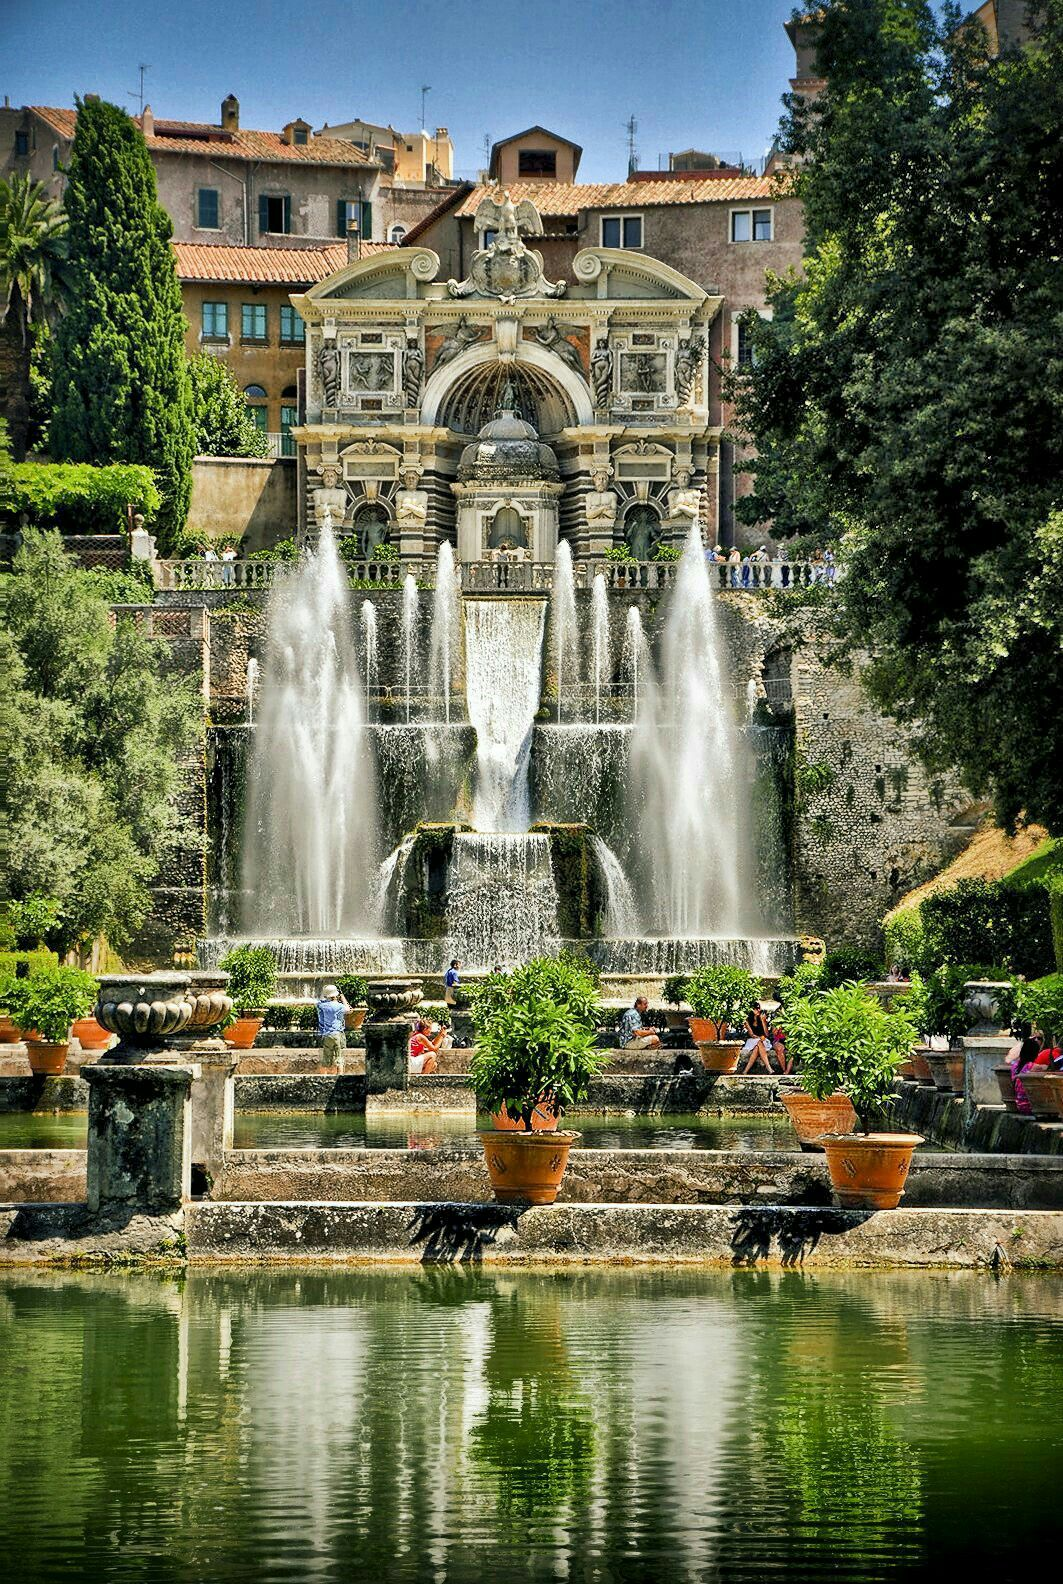 Villa D Este A 16th Century Villa In Tivoli Italy Famous For Its Terraced Hillside Italian Renaissance Garden Tivoli Italy Italy Travel Places To Travel